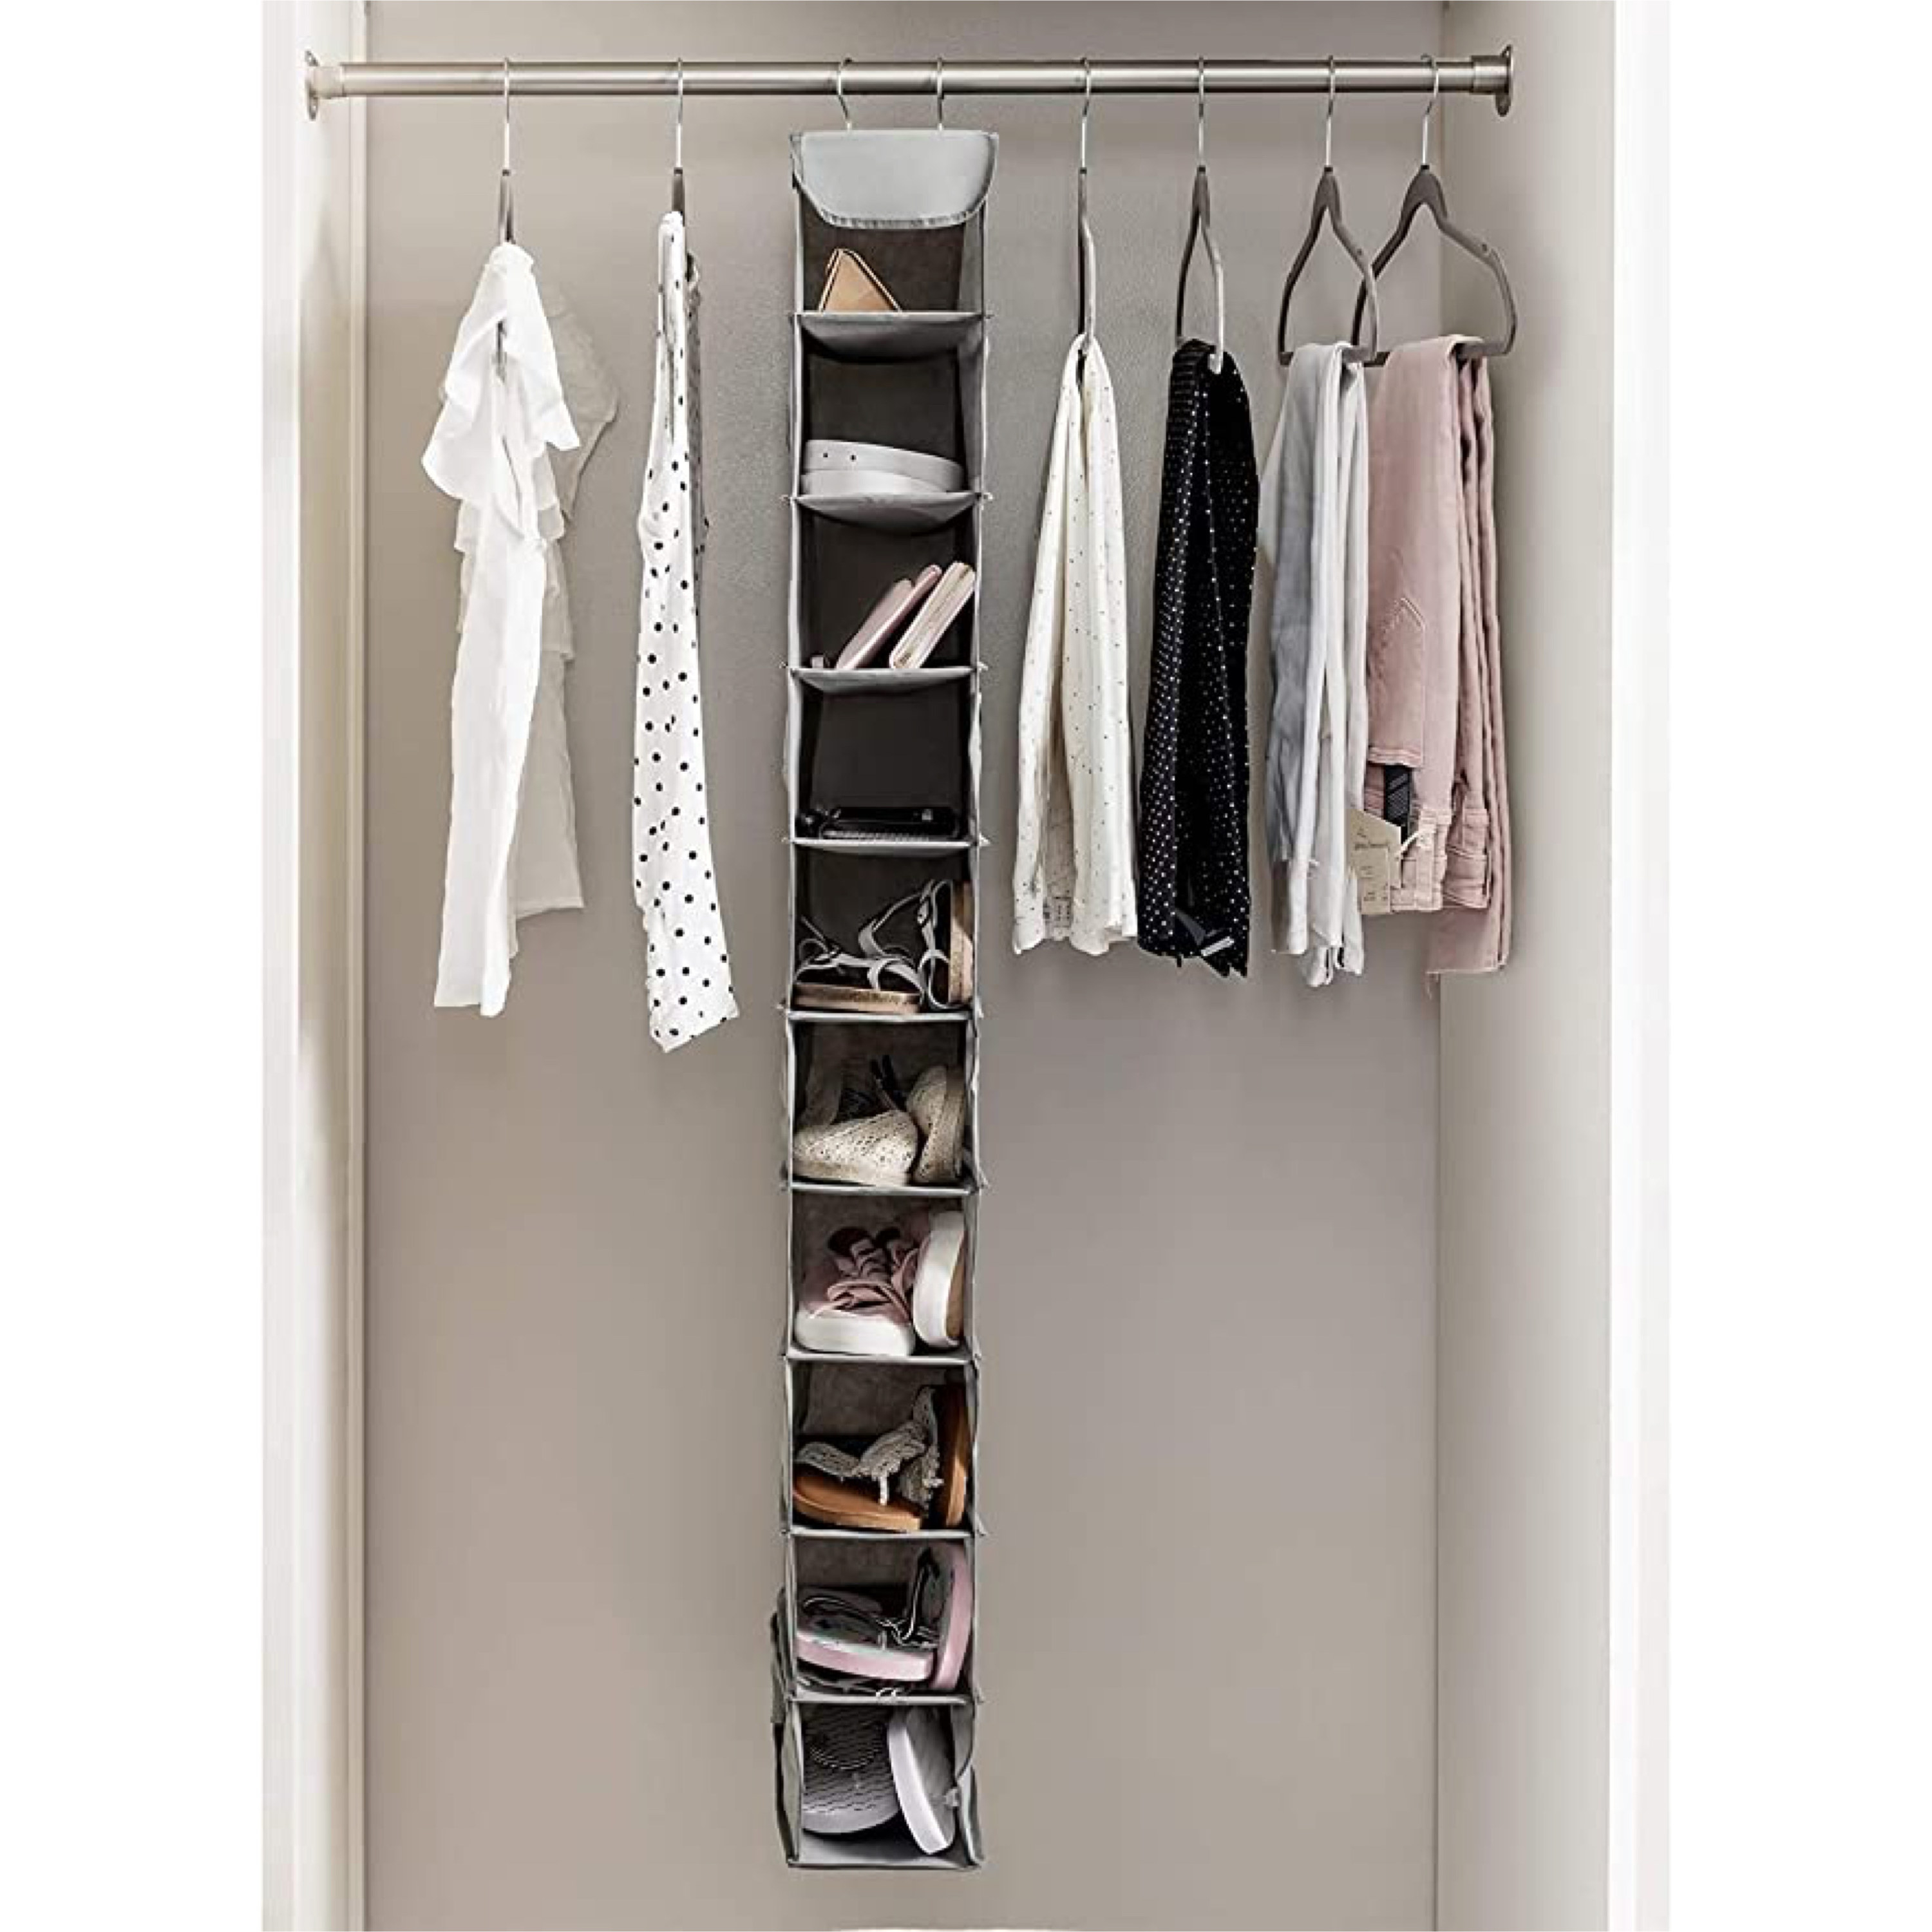 A vertical shoe organiser with multiple slots and hangers for easy storage